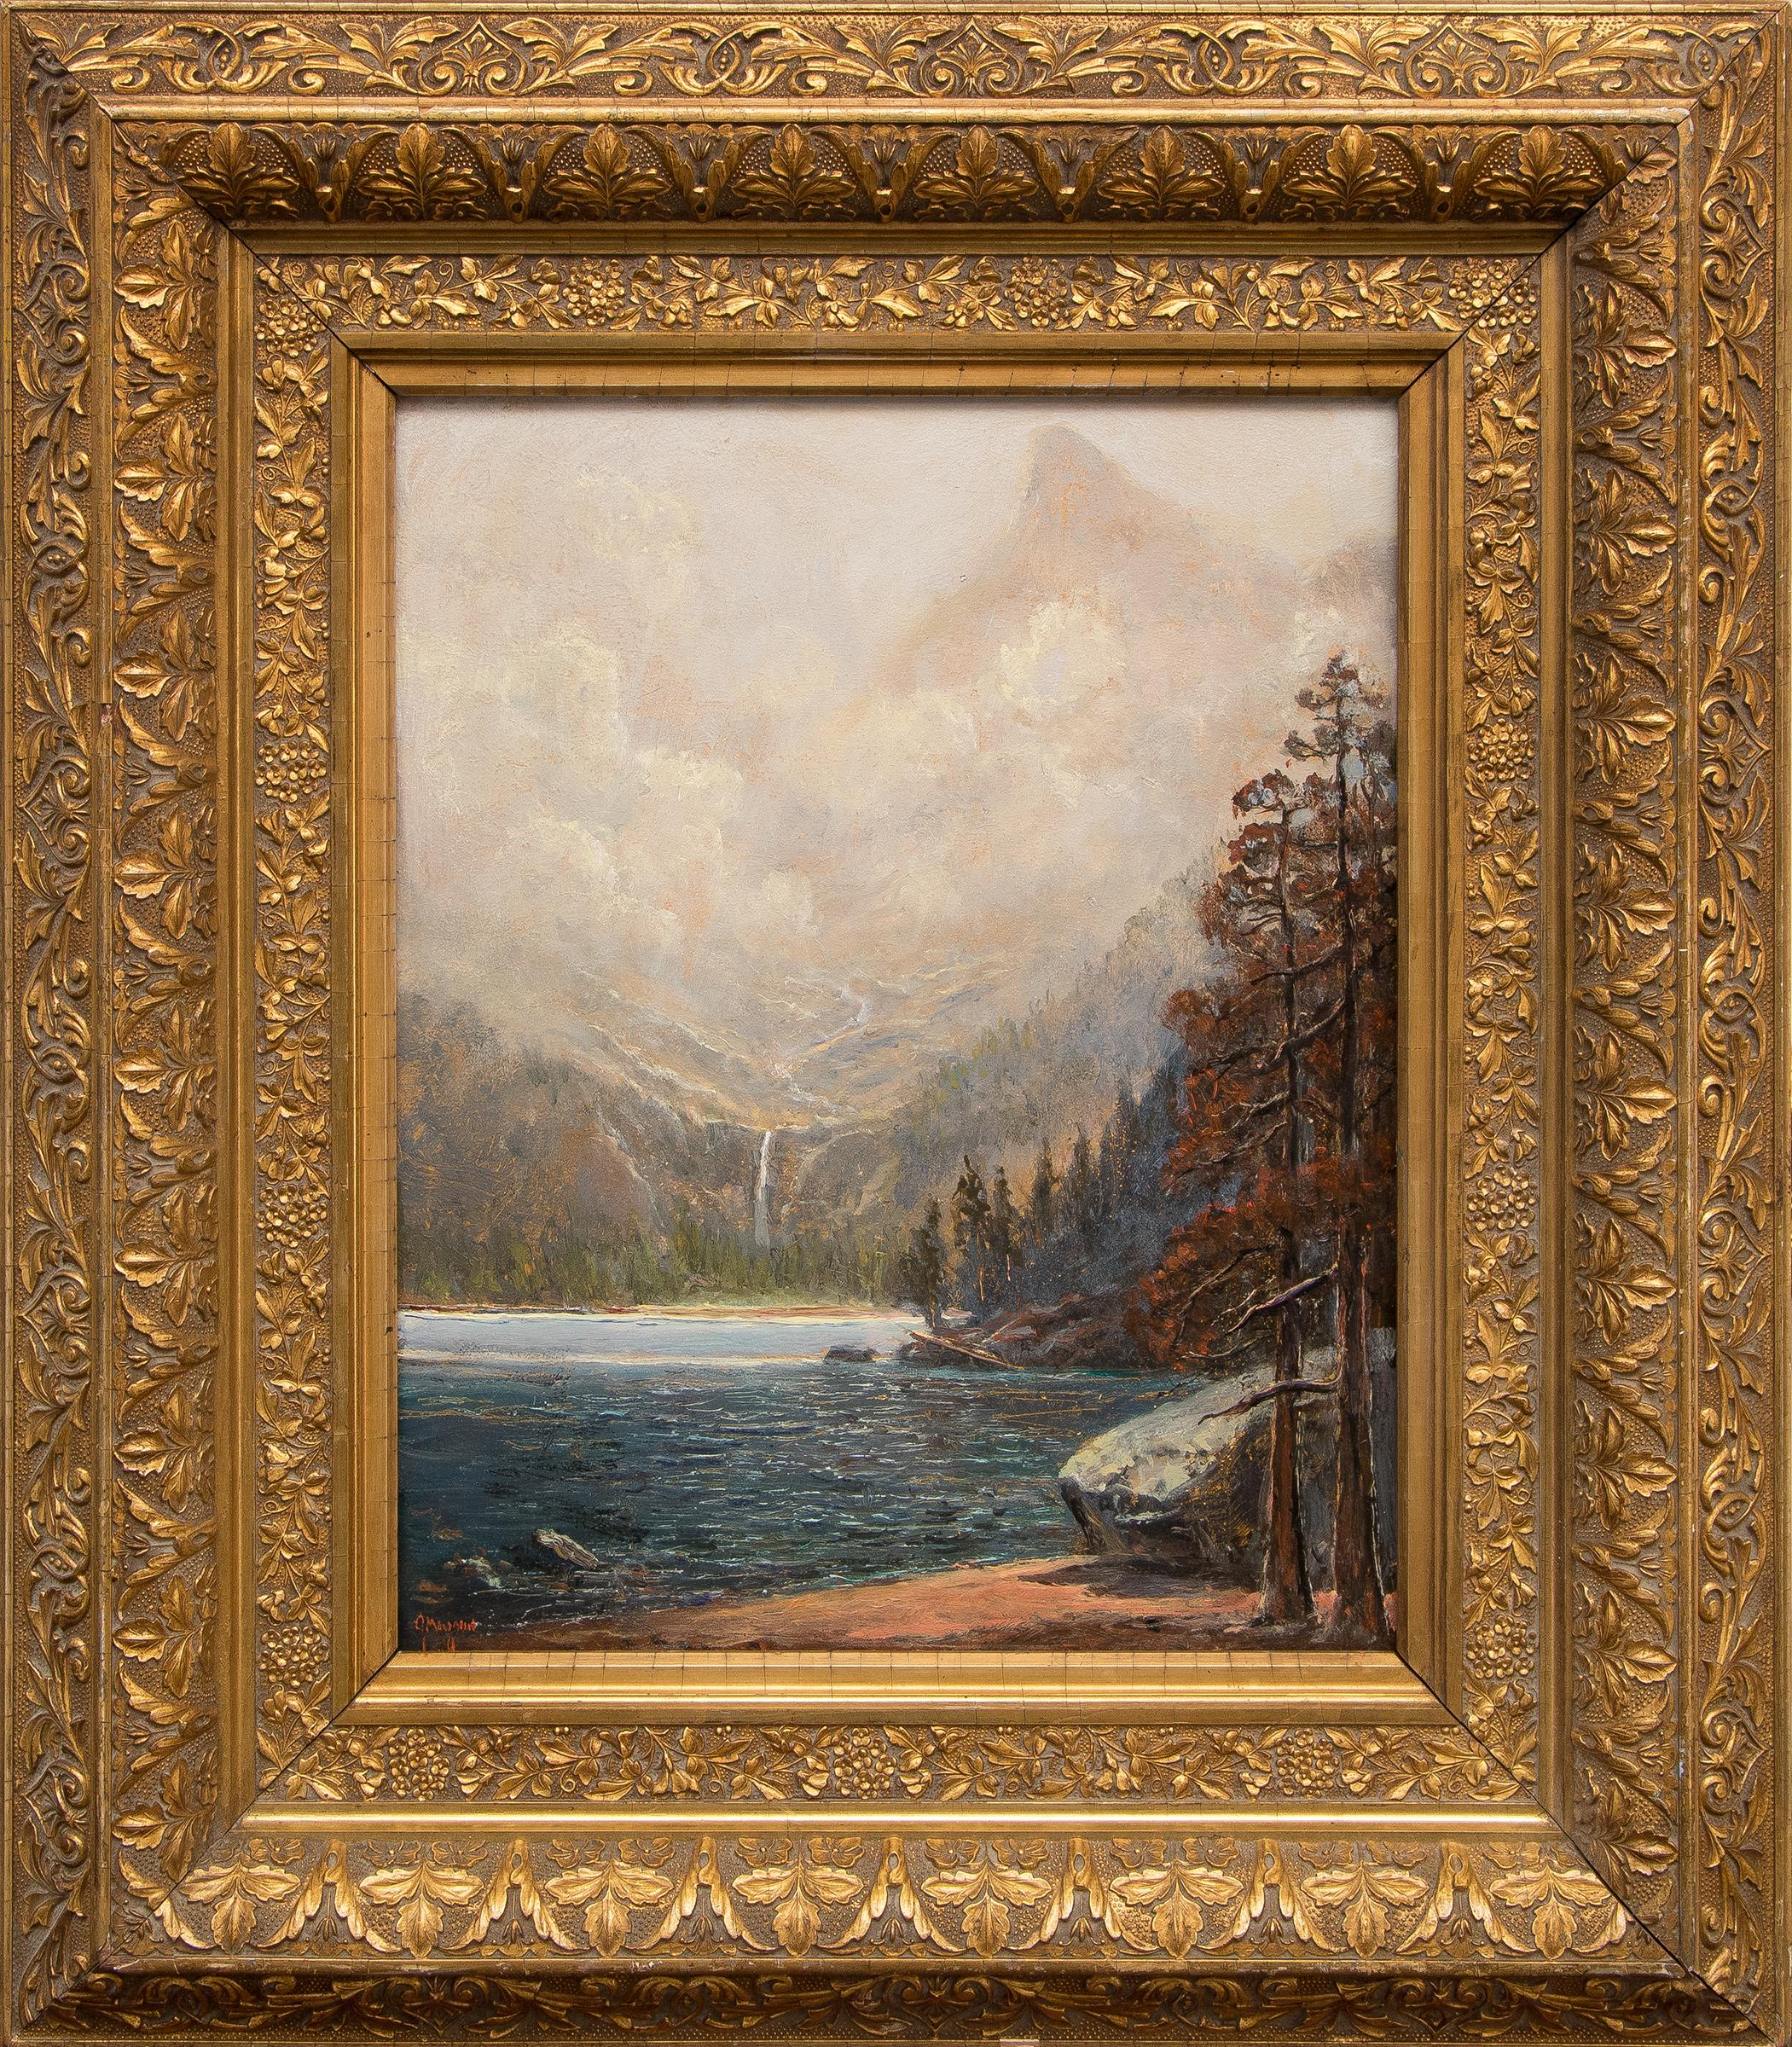 Odessa Lake, Colorado, Traditional Landscape Painting: Water, Trees and Mountain